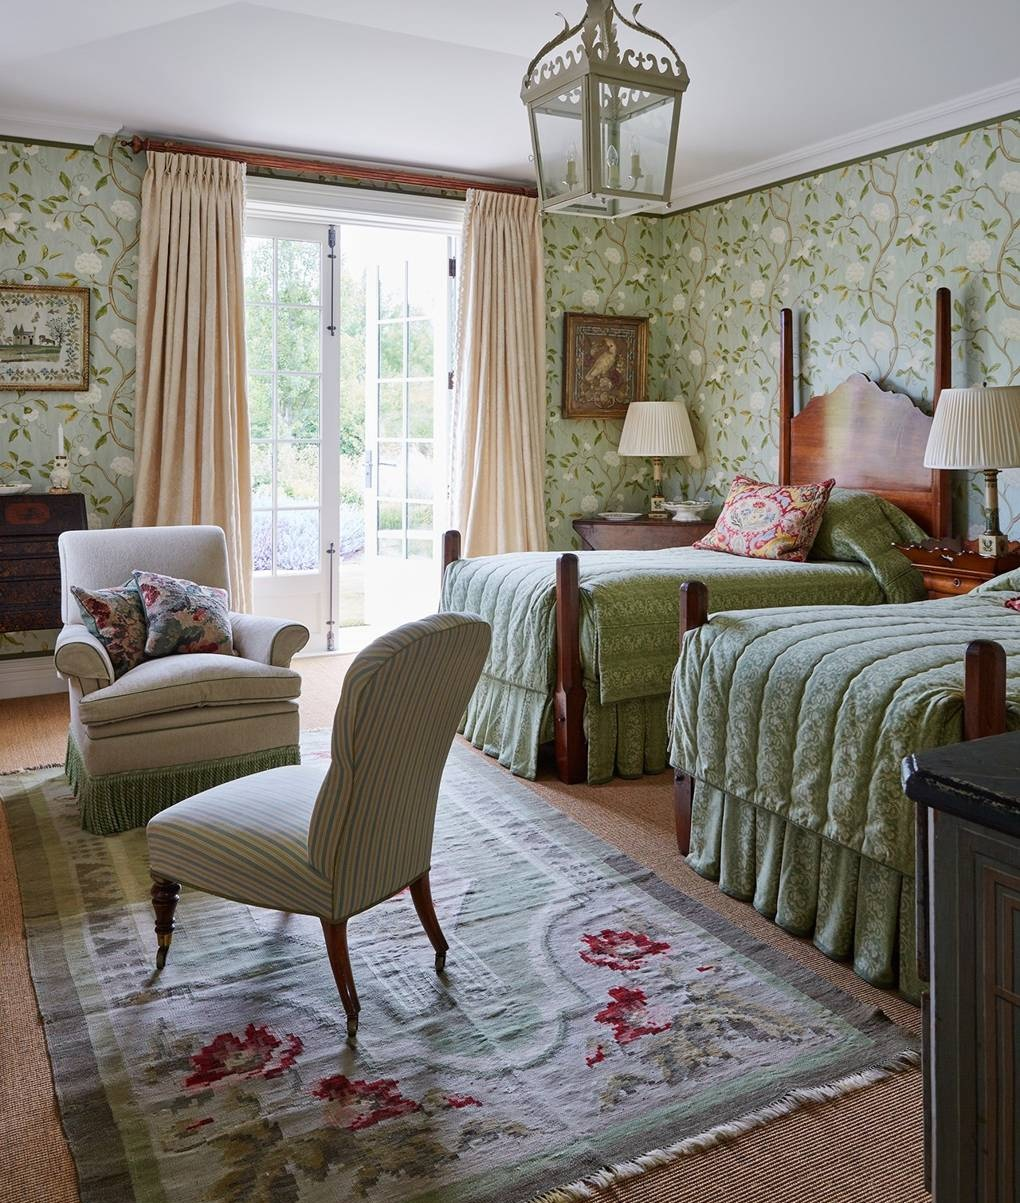 Green Floral Wallpaper in this pretty bedroom